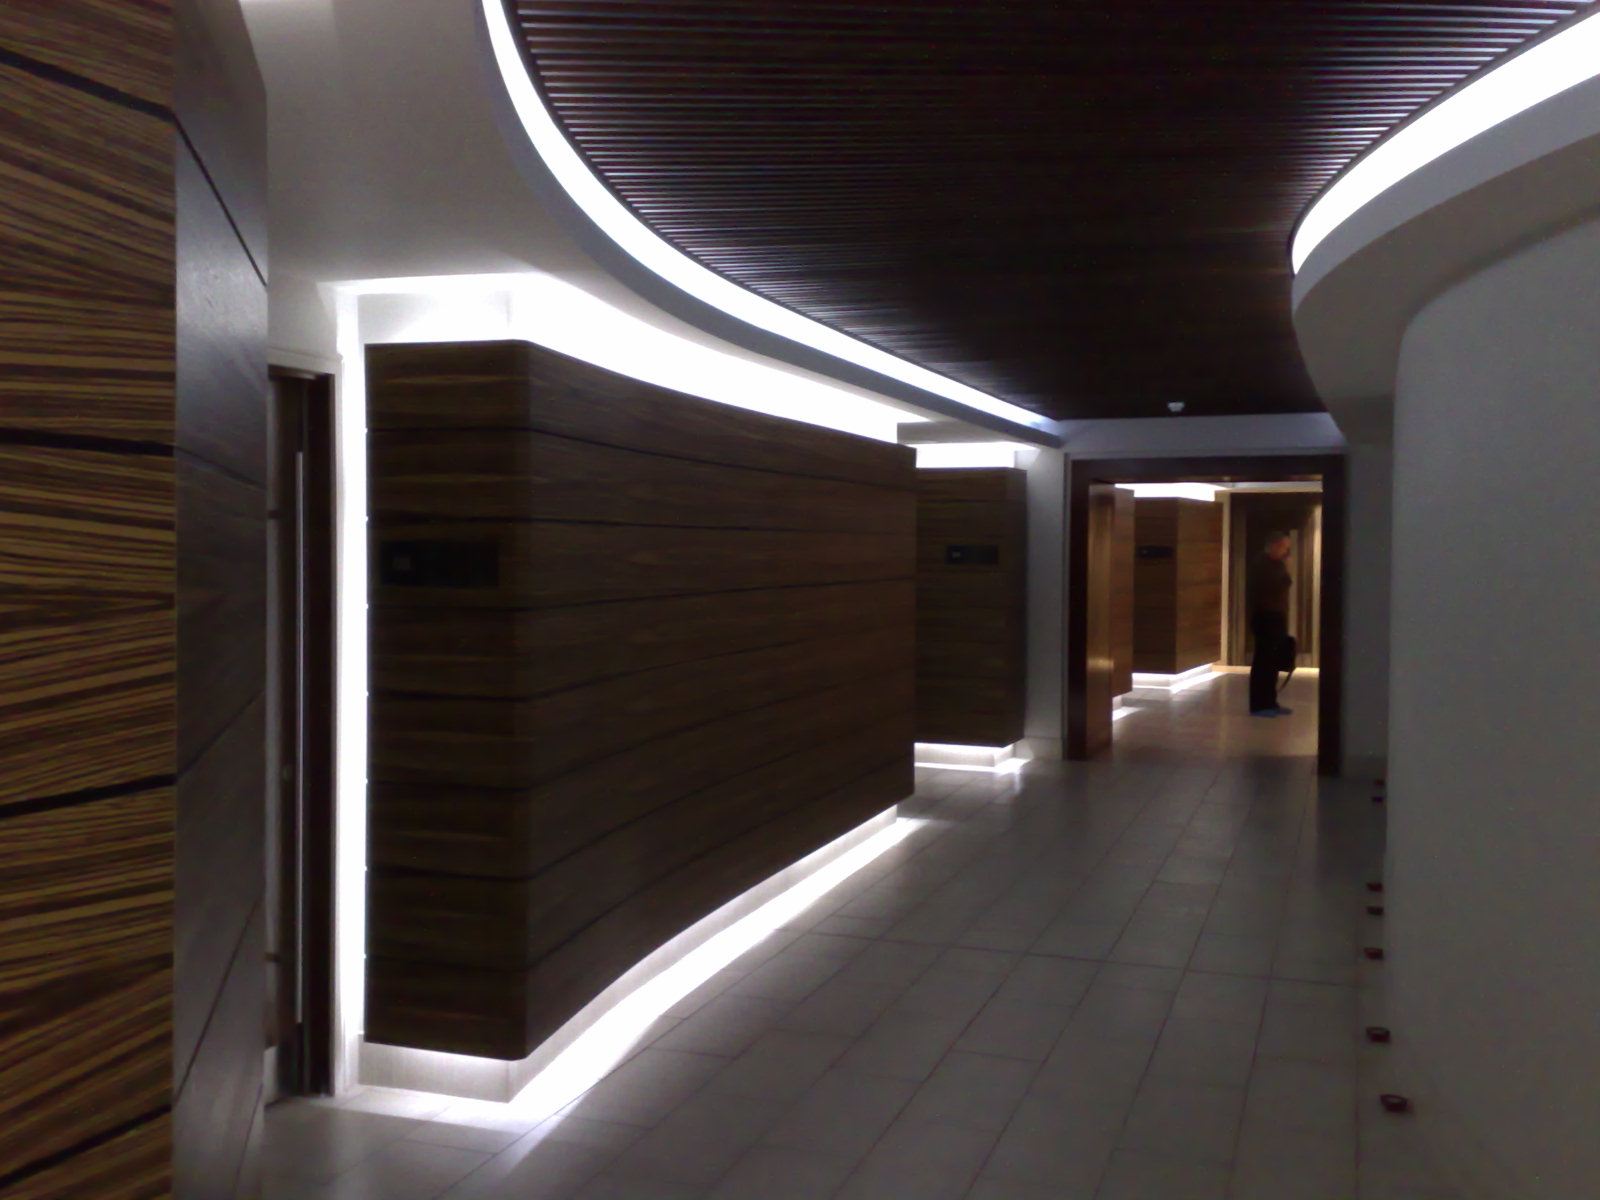 Led lights from fofx hotel style - Plafones modernos ...